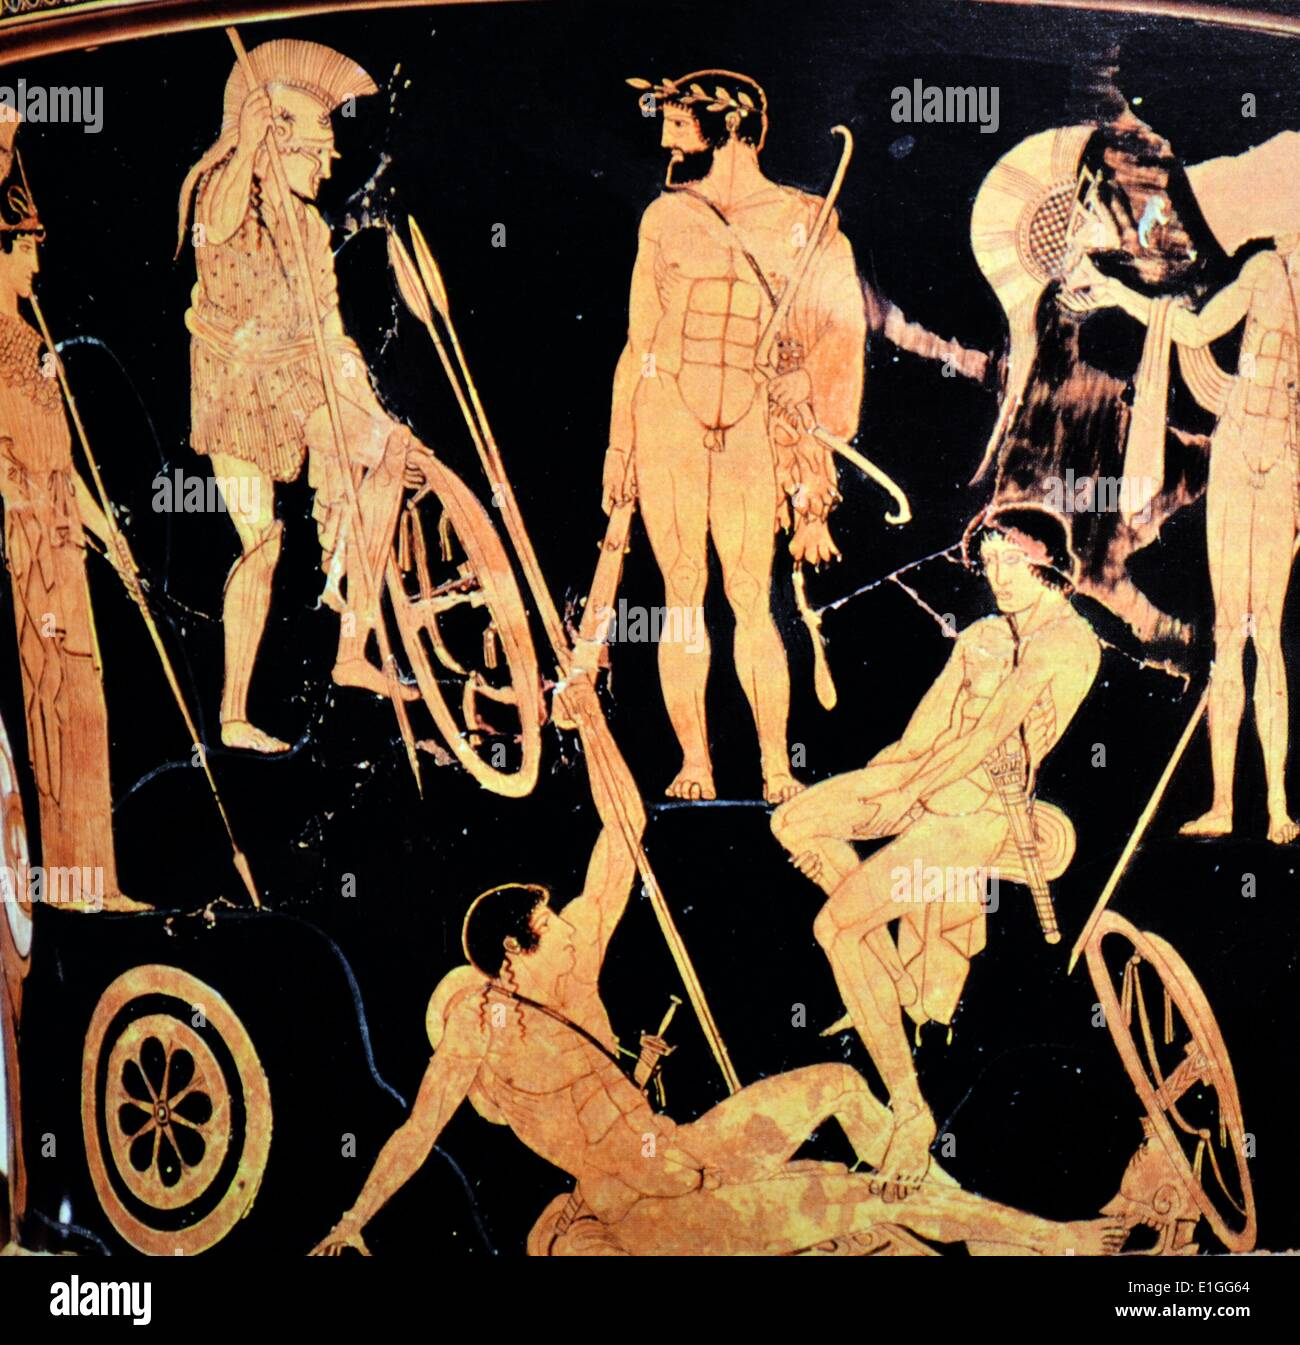 Greek attic krater depicting Heracles and Argonauts from Orvieto, Italy, 475 B.C. - Stock Image